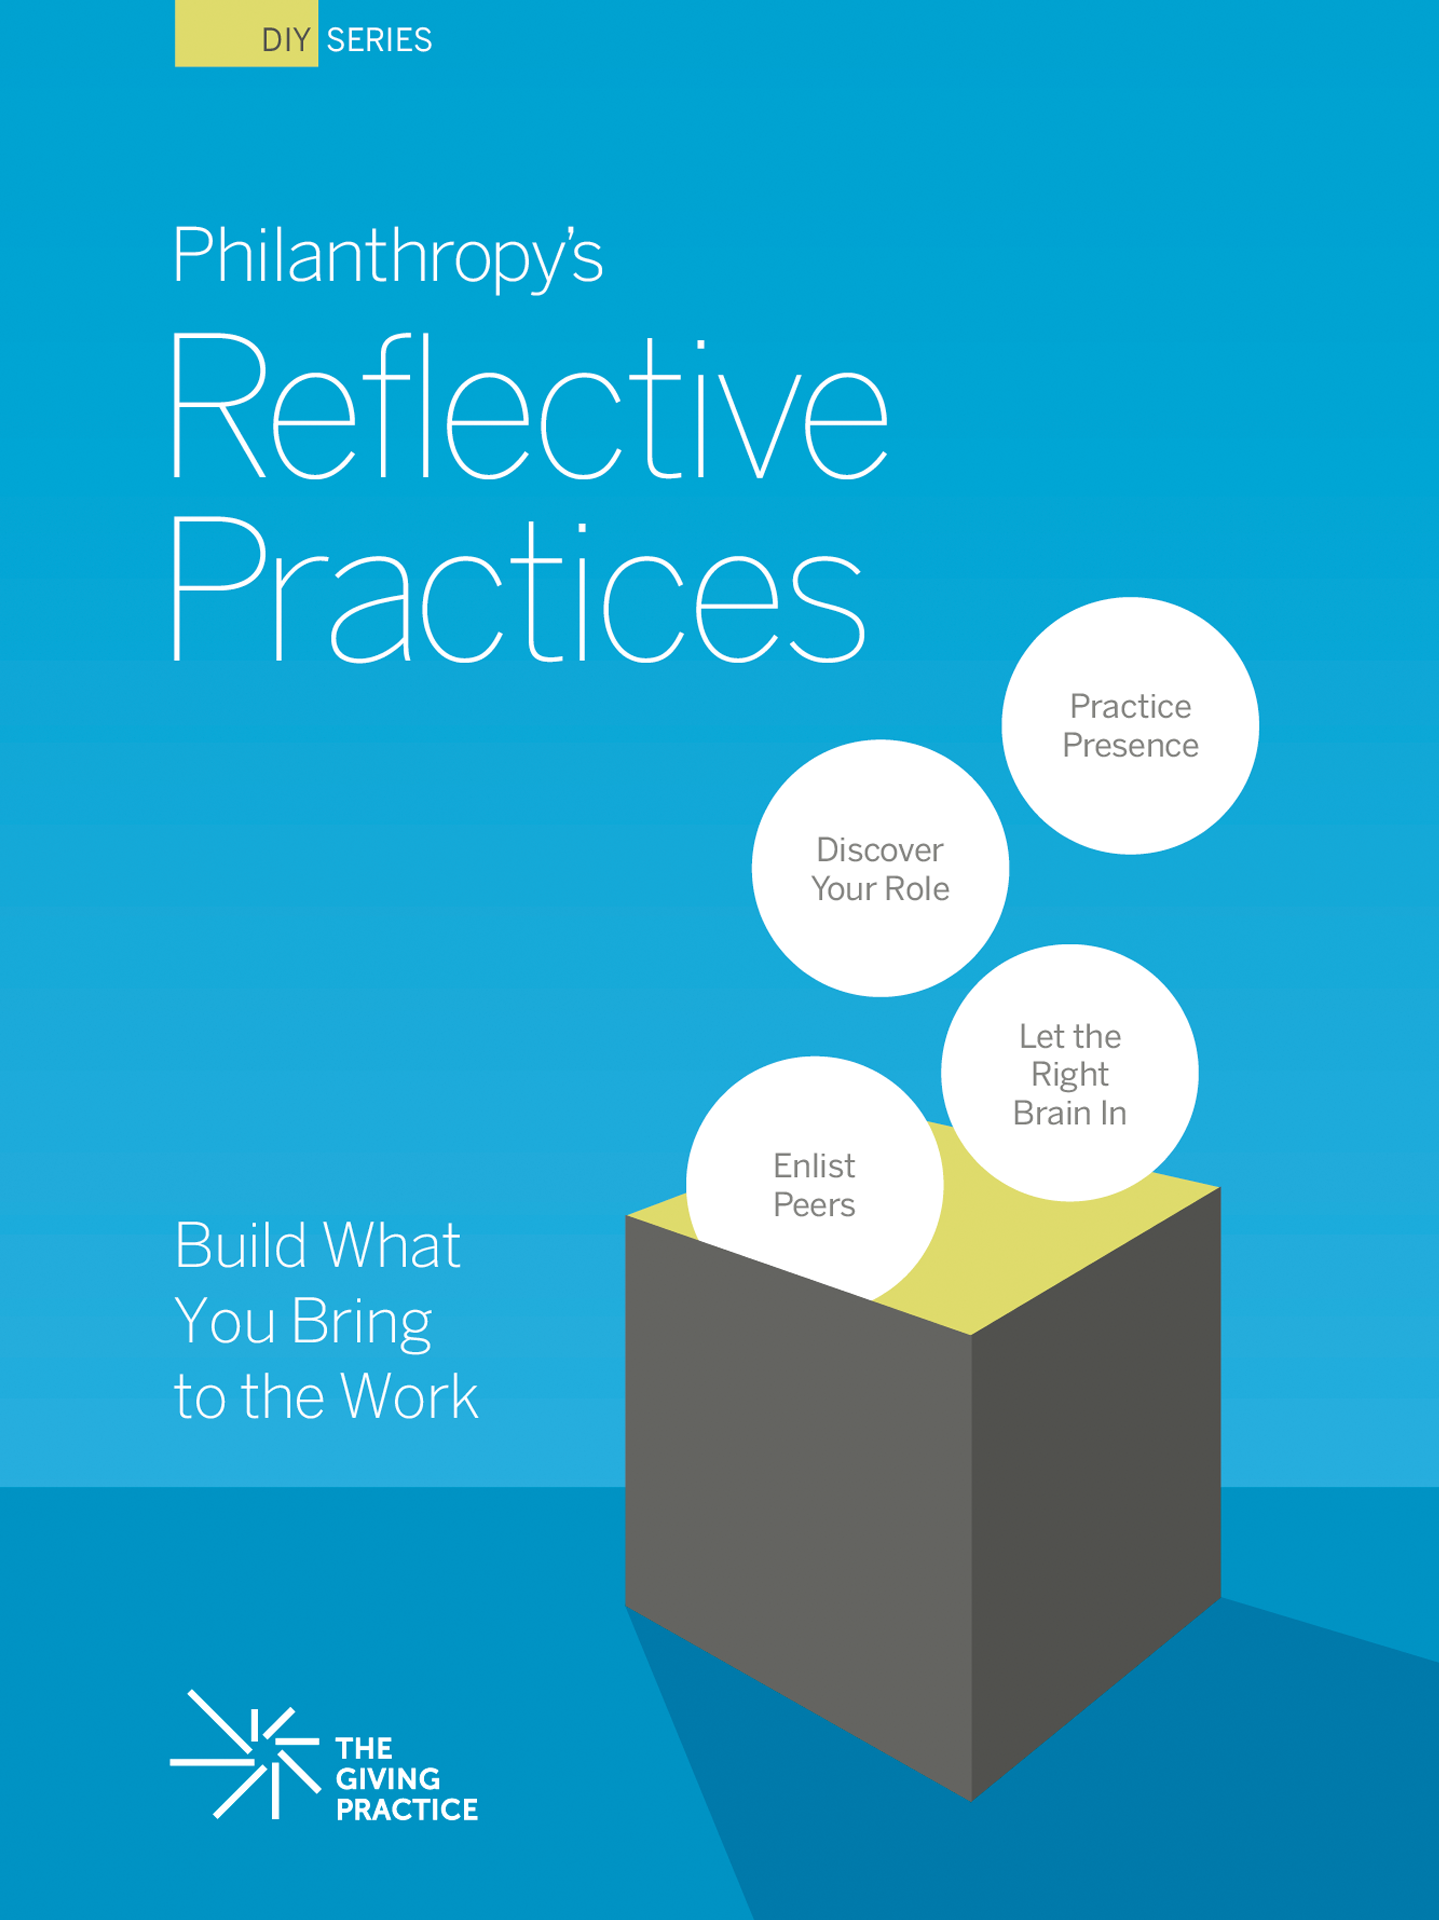 Thumbnail of cover, entitled Philanthropy's Reflective Practices: Build What You Bring to Work